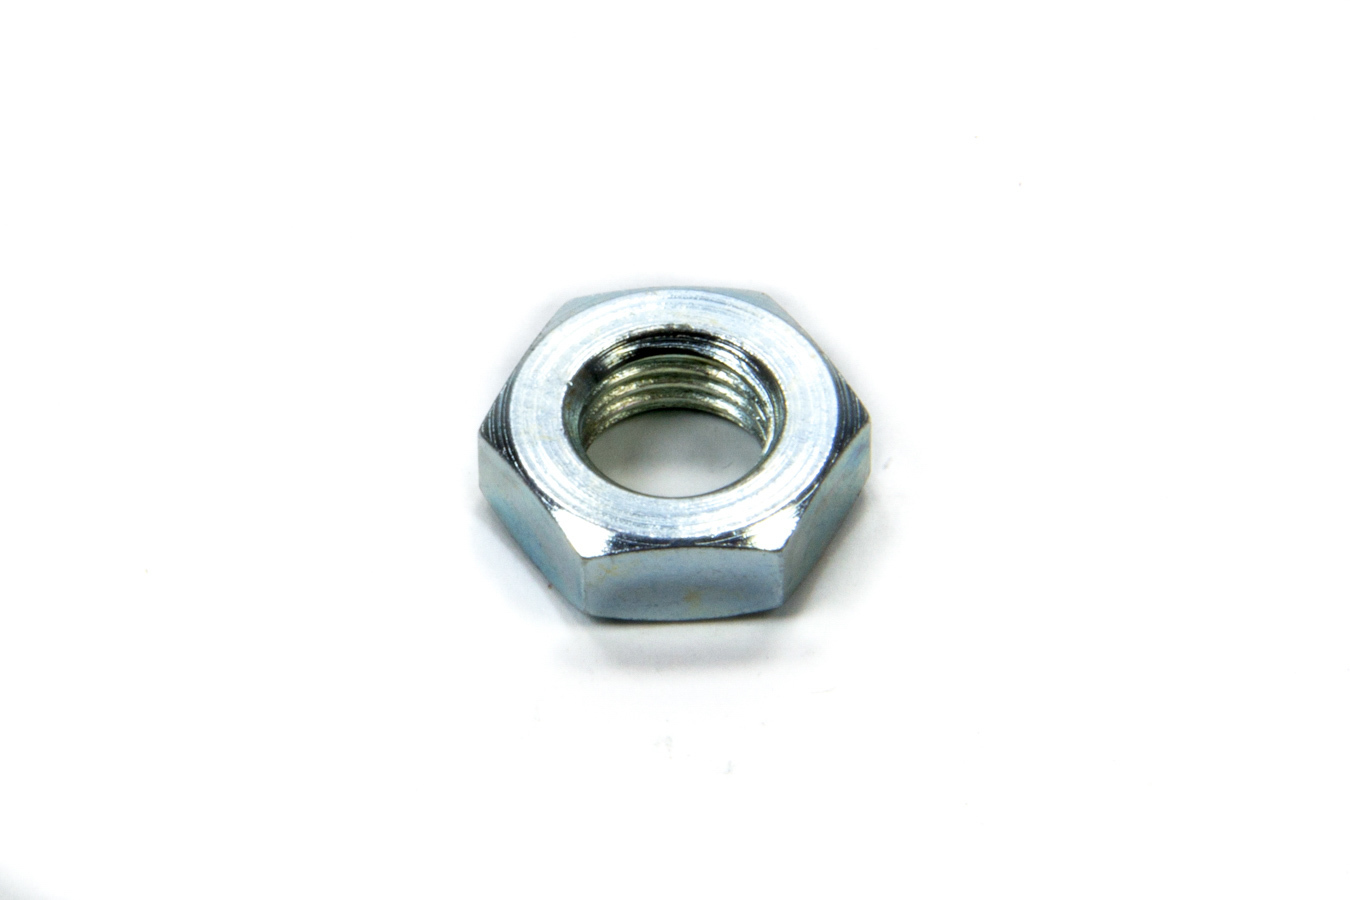 Fragola 592403 Bulkhead Fitting Nut, 3 AN, Steel, Zinc Oxide, Each